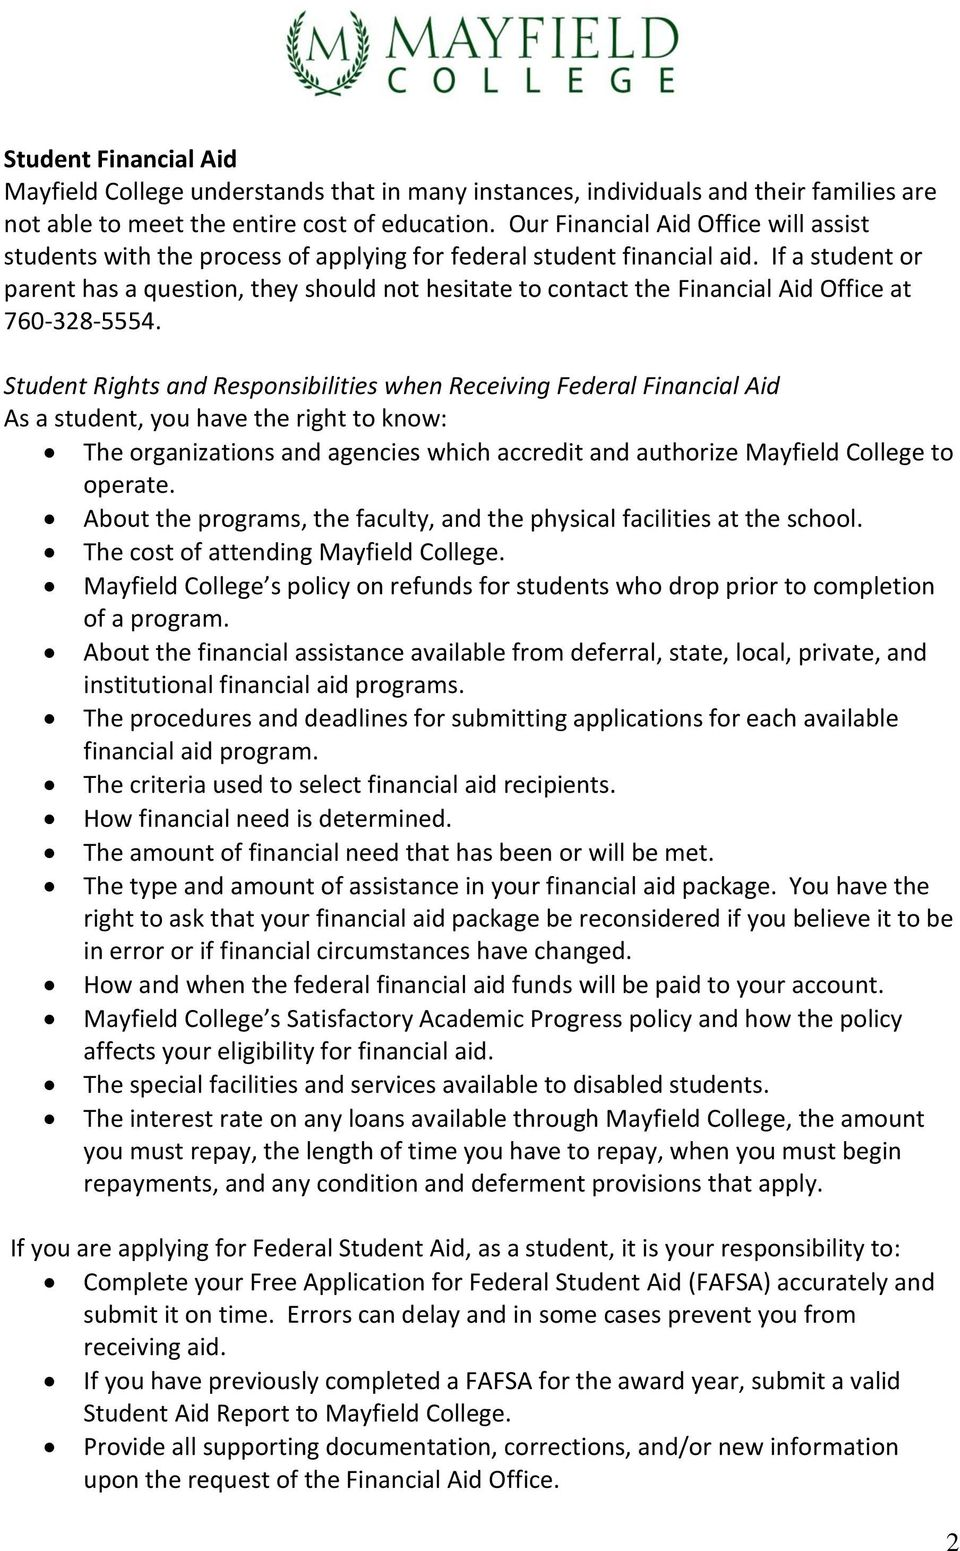 If a student or parent has a question, they should not hesitate to contact the Financial Aid Office at 760-328-5554.